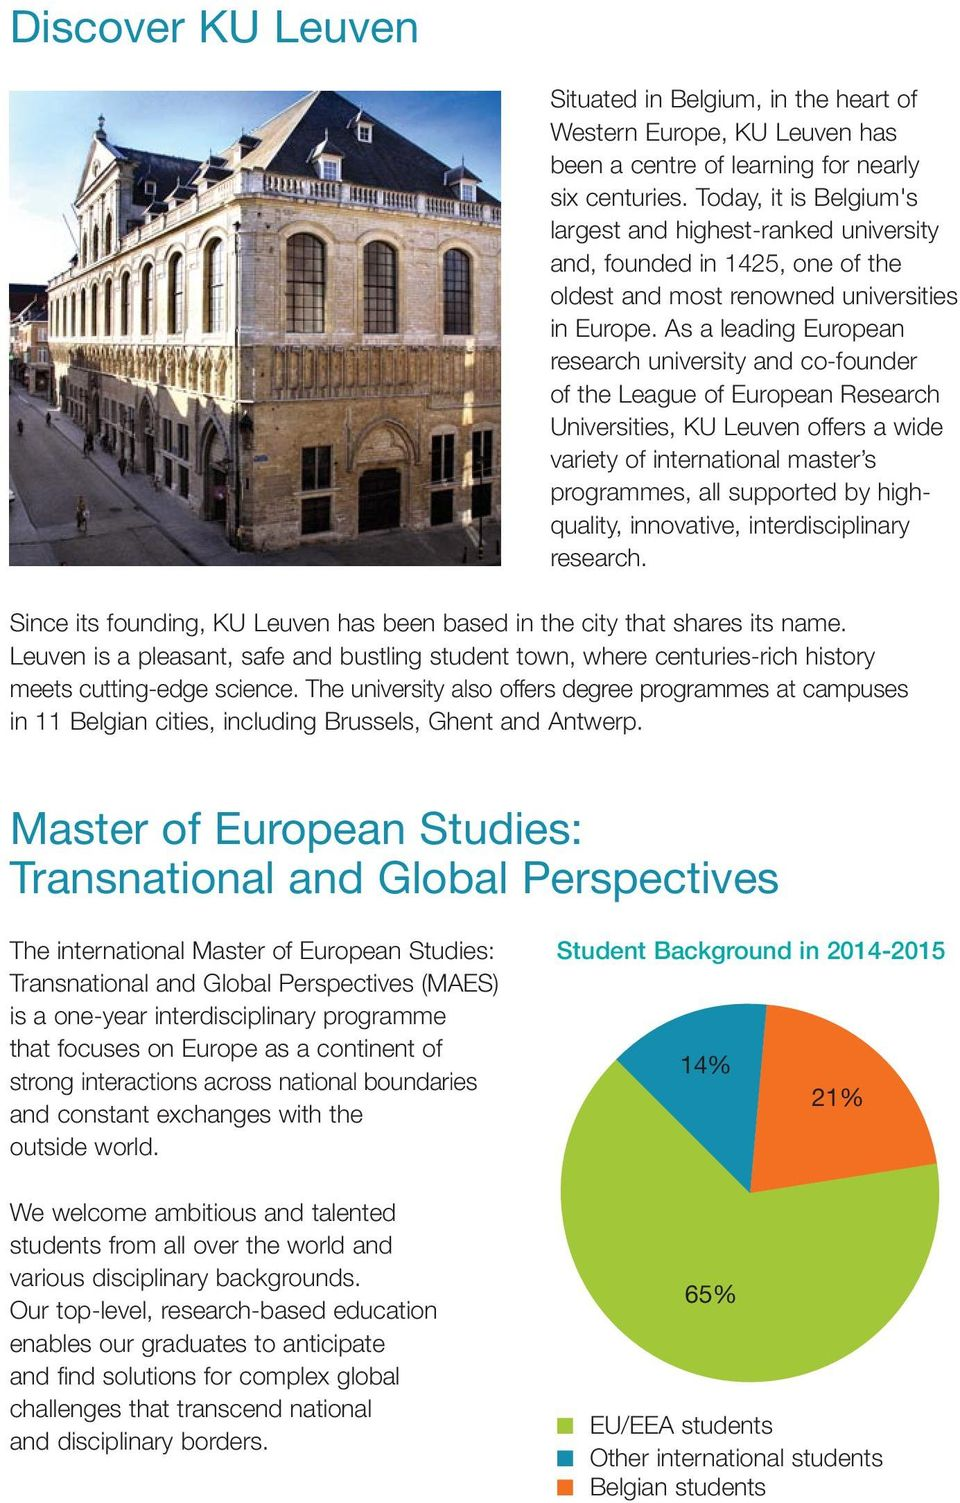 As a leading European research university and co-founder of the League of European Research Universities, KU Leuven offers a wide variety of inter national master s programmes, all supported by